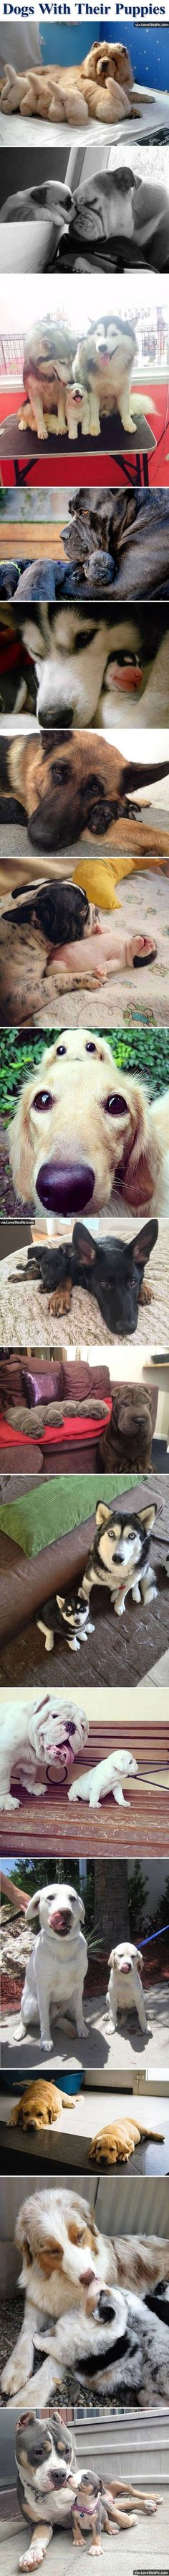 Dogs With Their Pupp